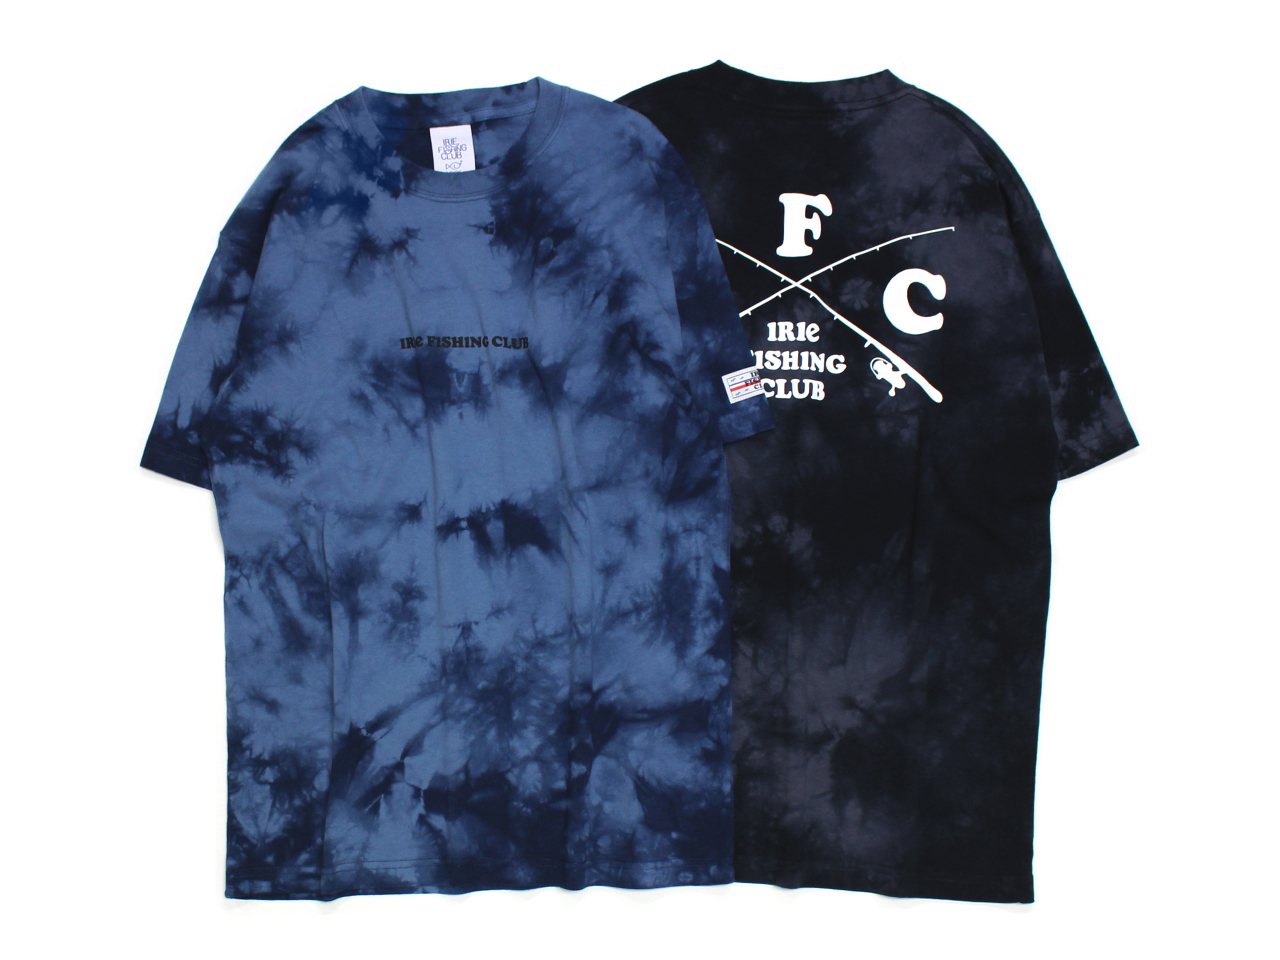 CROSS RDO TIE DYE TEE - IRIE FISHING CLUB